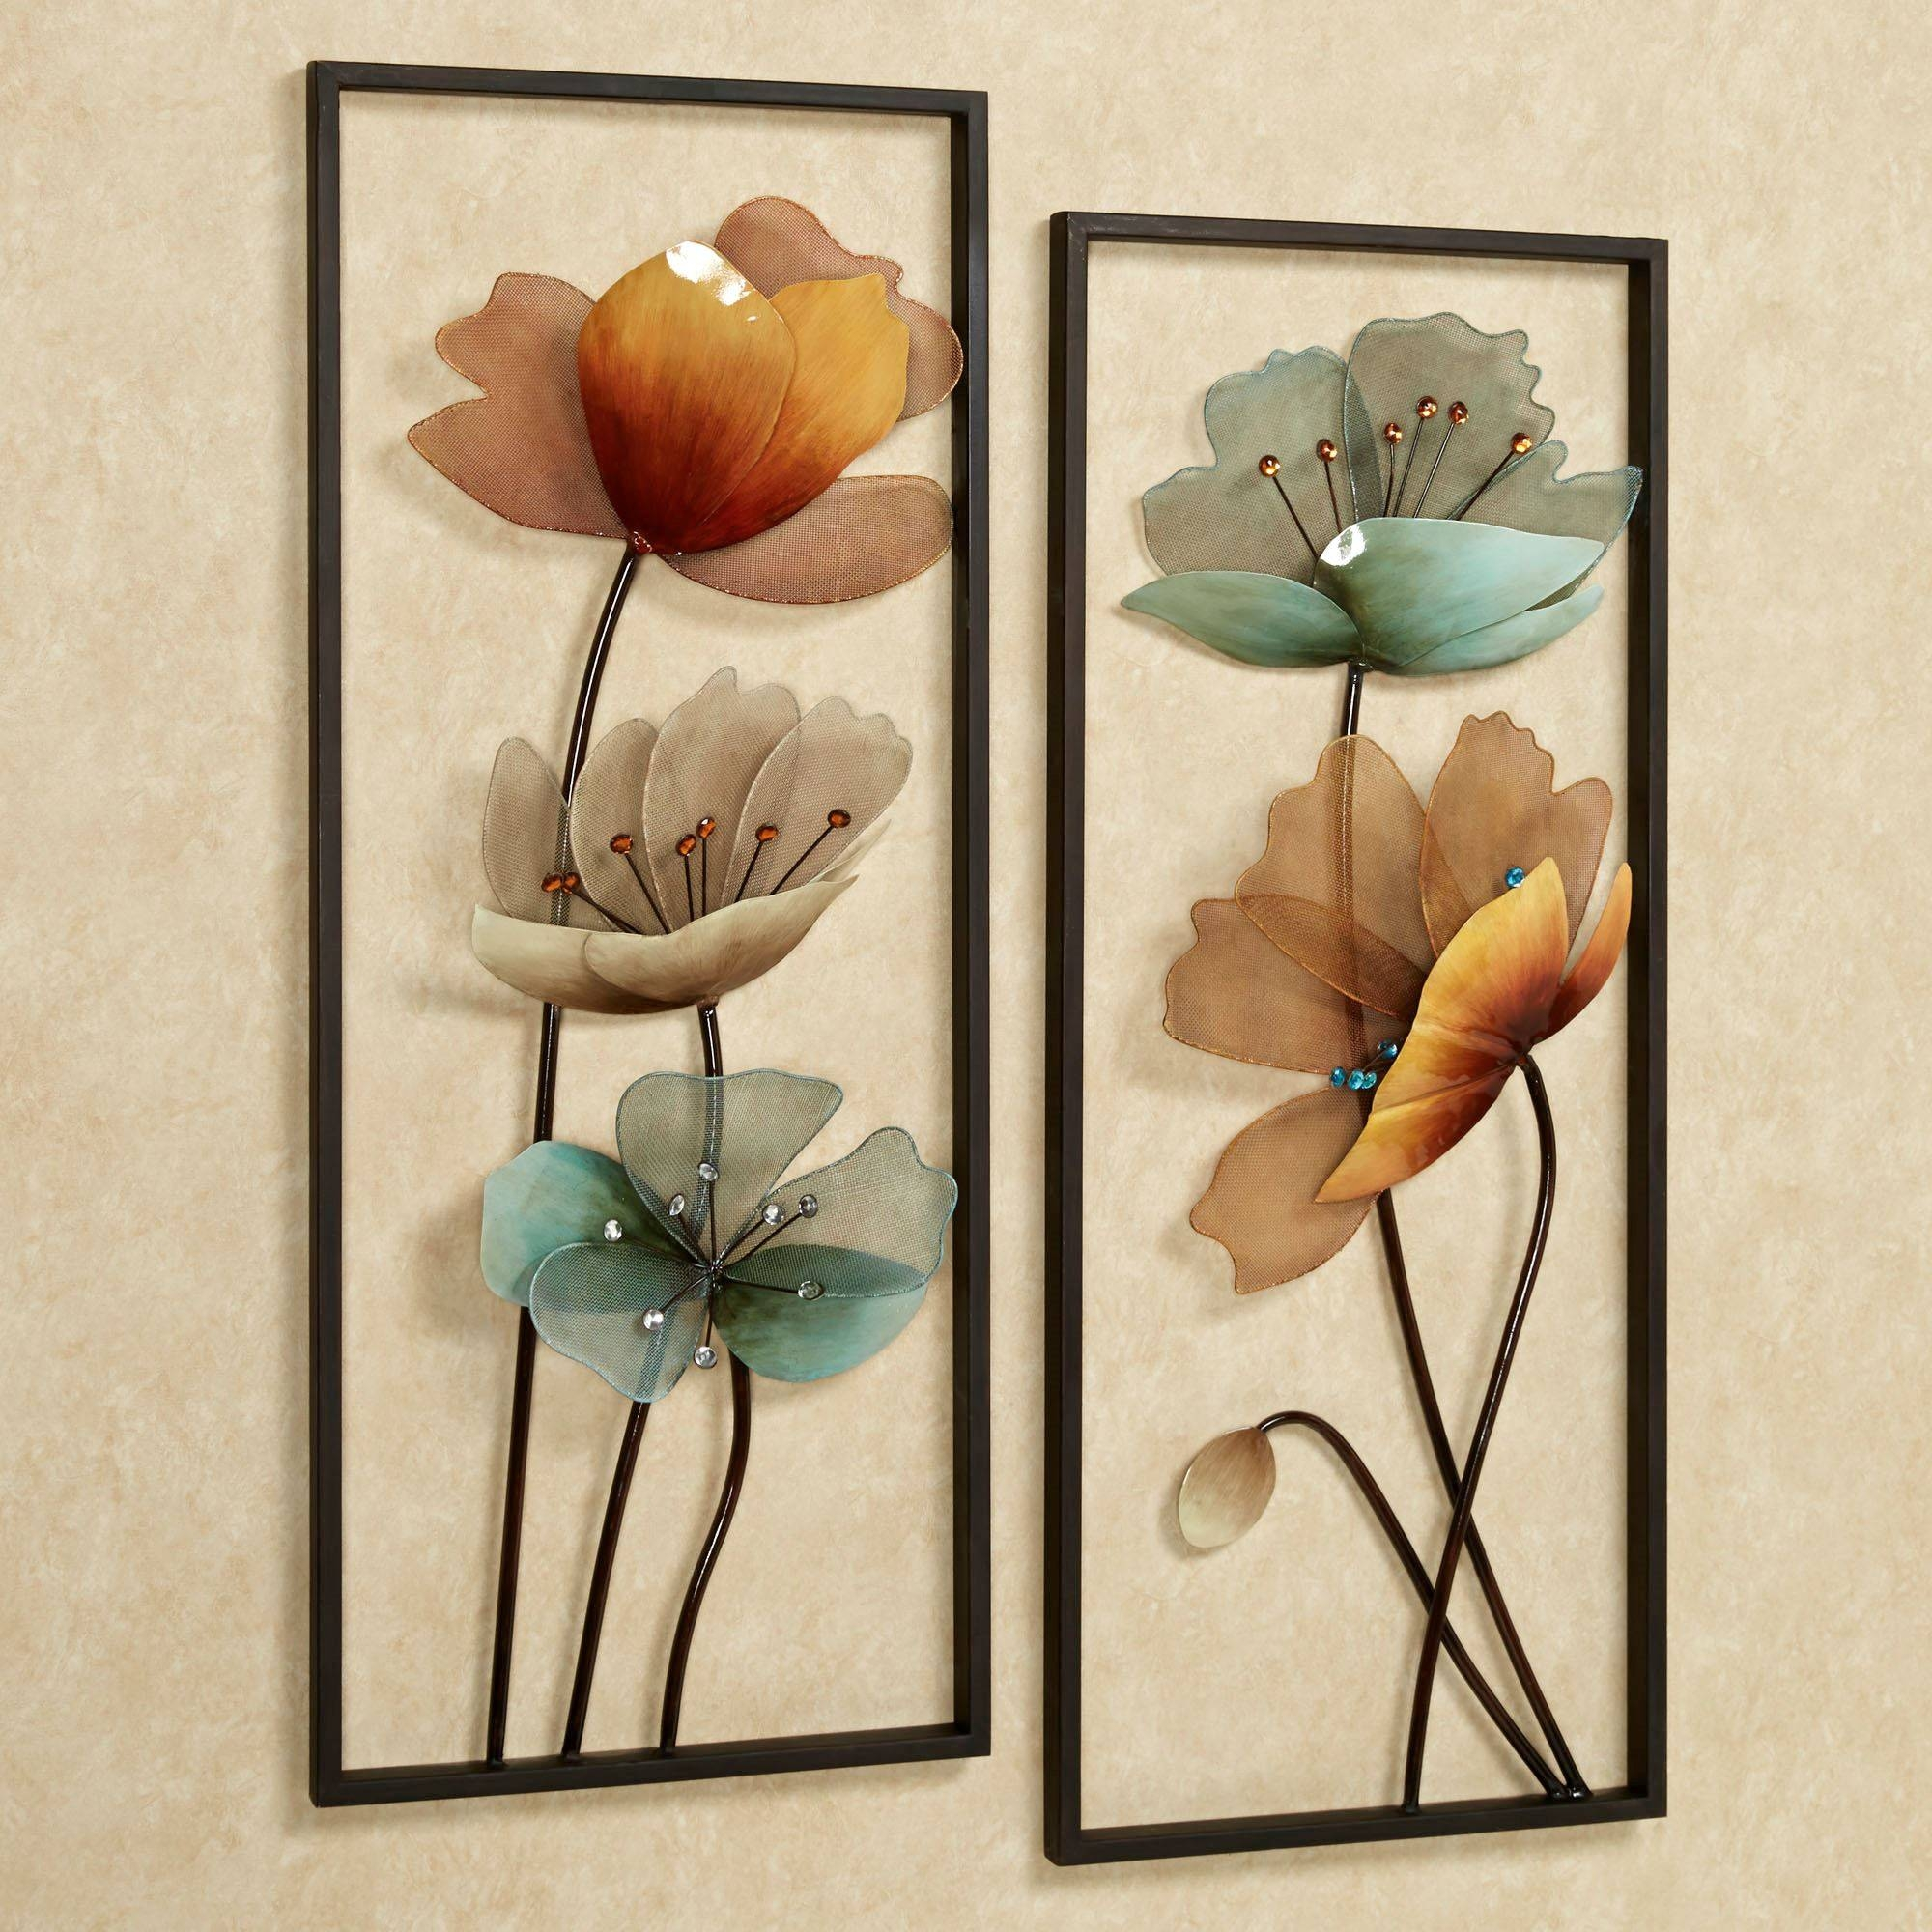 Flower Wall Art | Touch Of Class Regarding Current Italian Ceramic Wall Art (View 11 of 30)